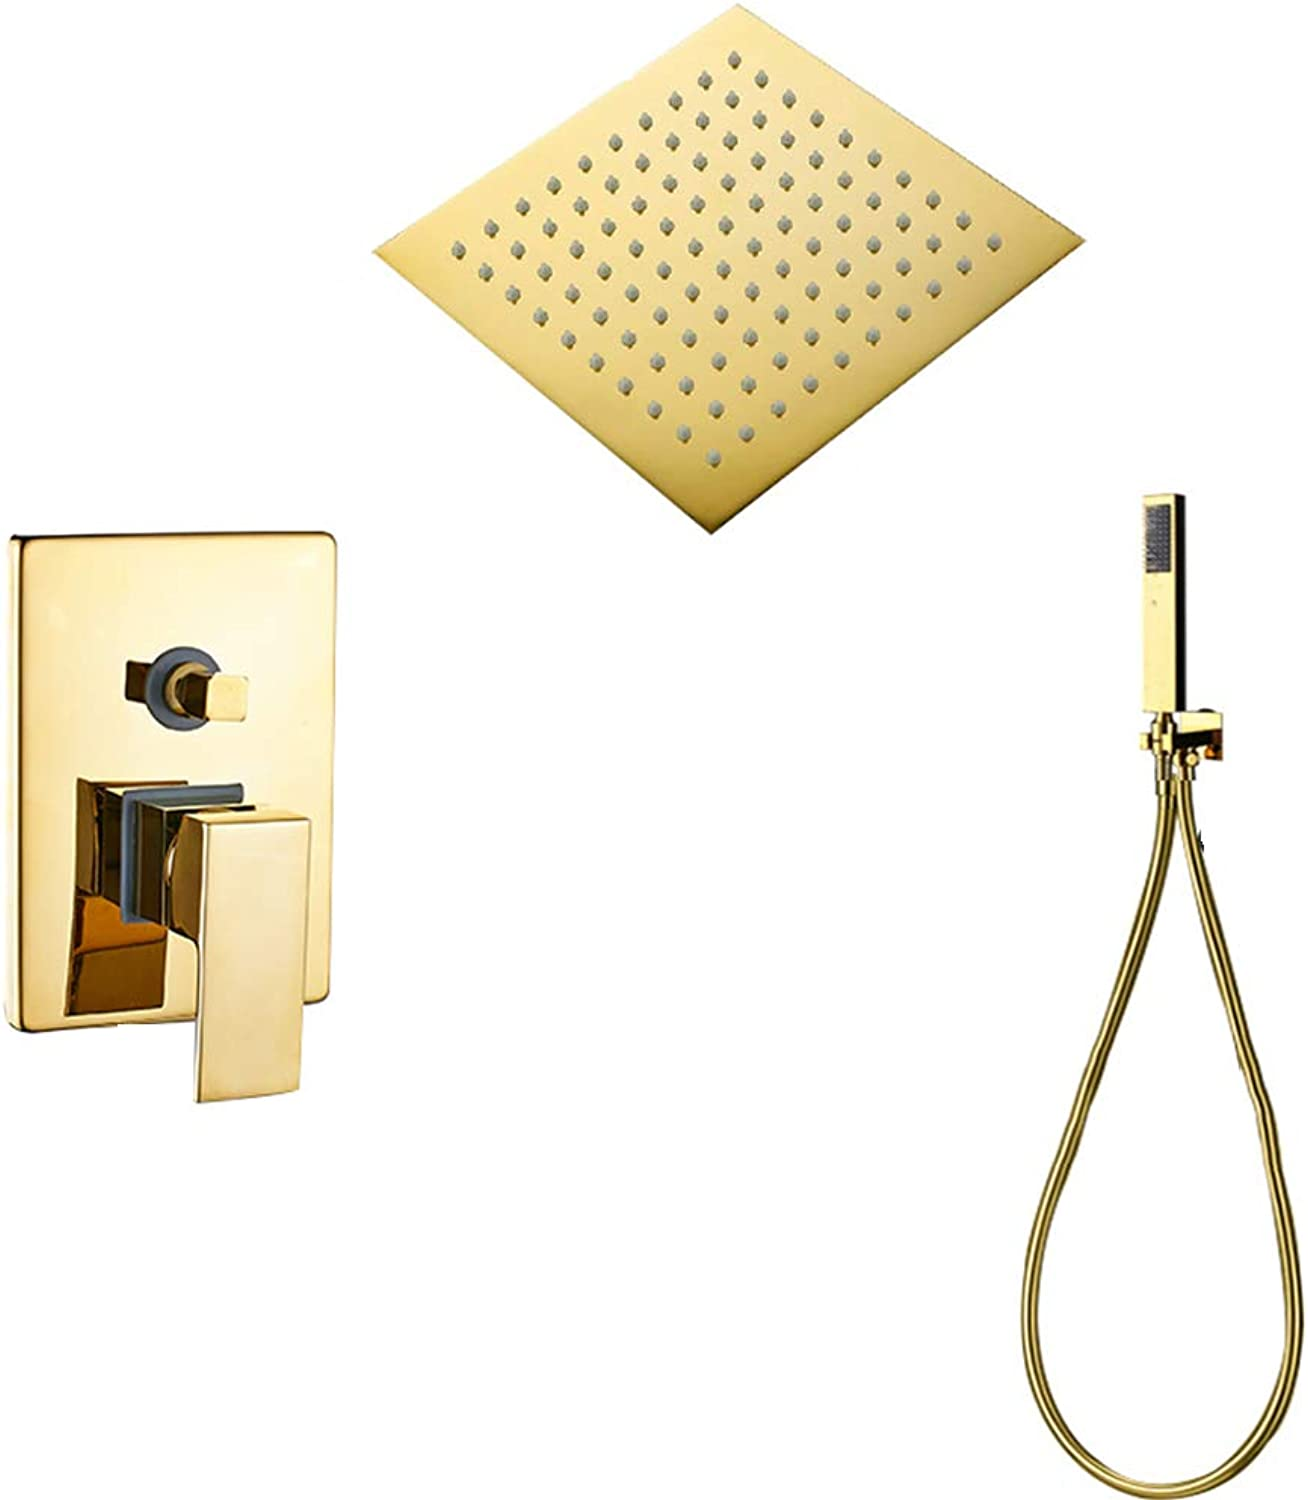 Shower System, Wall Mounted gold Shower Faucet Set, Ultra Thin gold Shower Head and Hand Shower,10Inchfullset